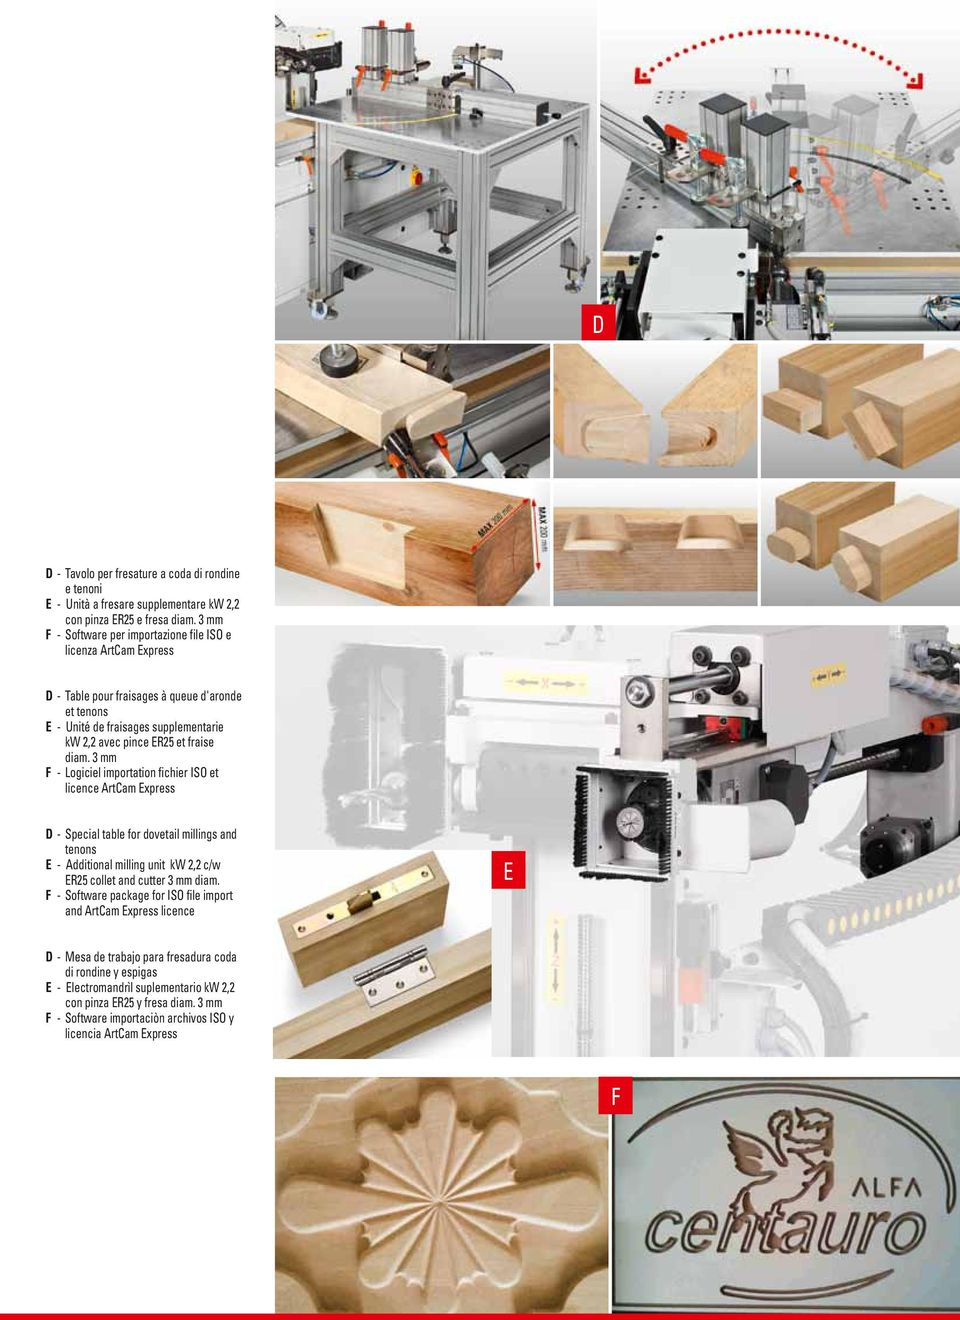 diam. 3 mm F - Logiciel importation fichier ISO et licence ArtCam Express D - Special table for dovetail millings and tenons E - Additional milling unit kw 2,2 c/w ER25 collet and cutter 3 mm